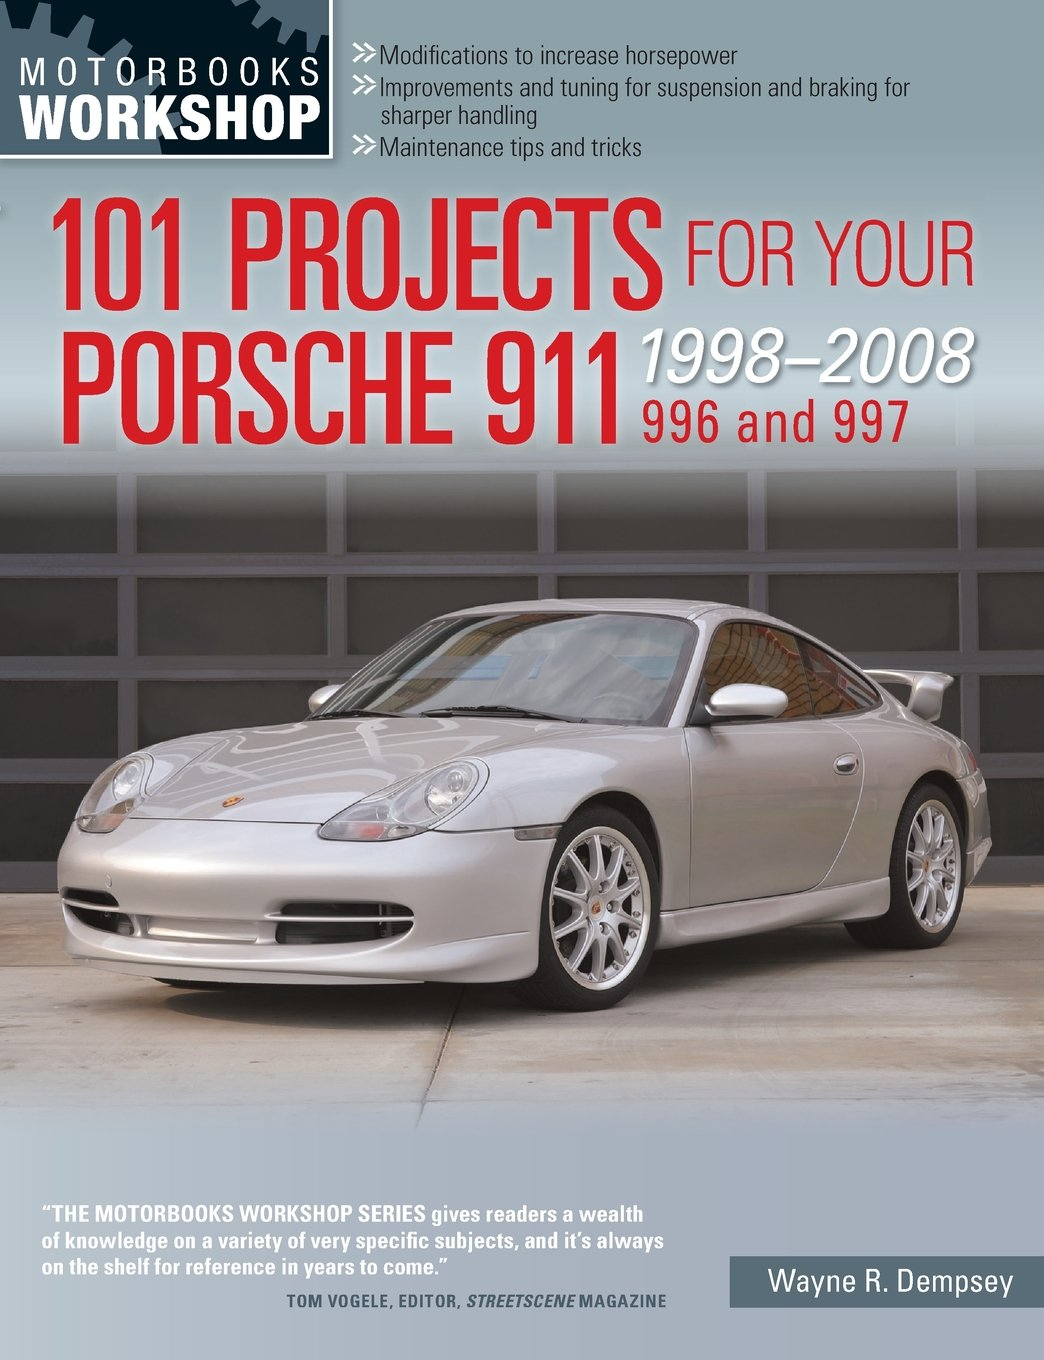 101 projects for your porsche 911 996 and 997 1998 2008 motorbooks rh amazon com Porsche 996 Owner's Manual Porsche 911 Carrera Owner's Manual